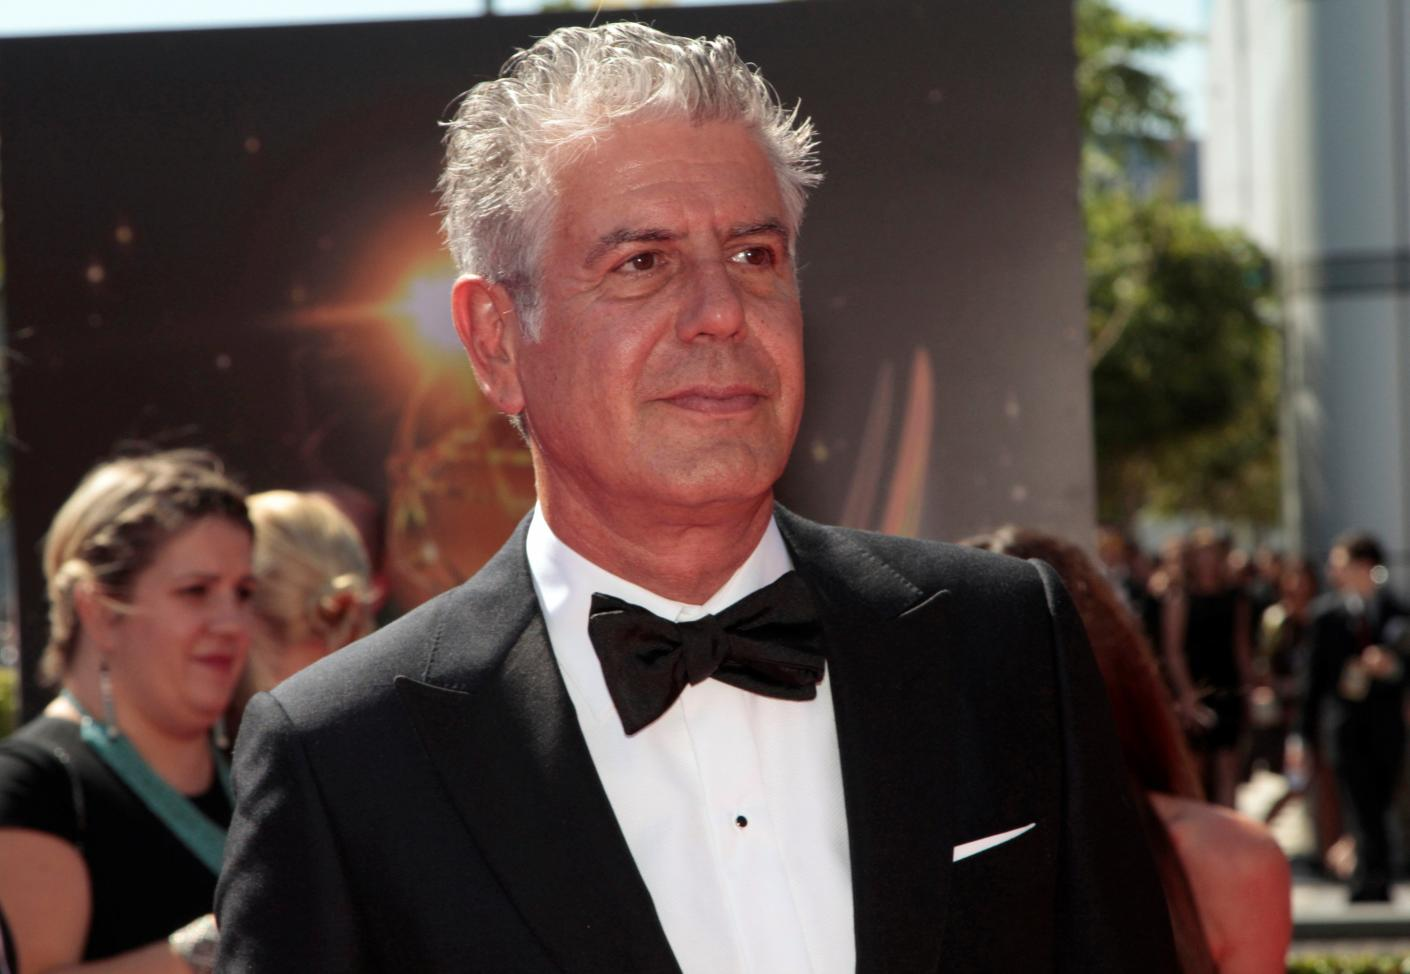 Visionary food and travel journalist Anthony Bourdain, who loved Vietnam, will be missed